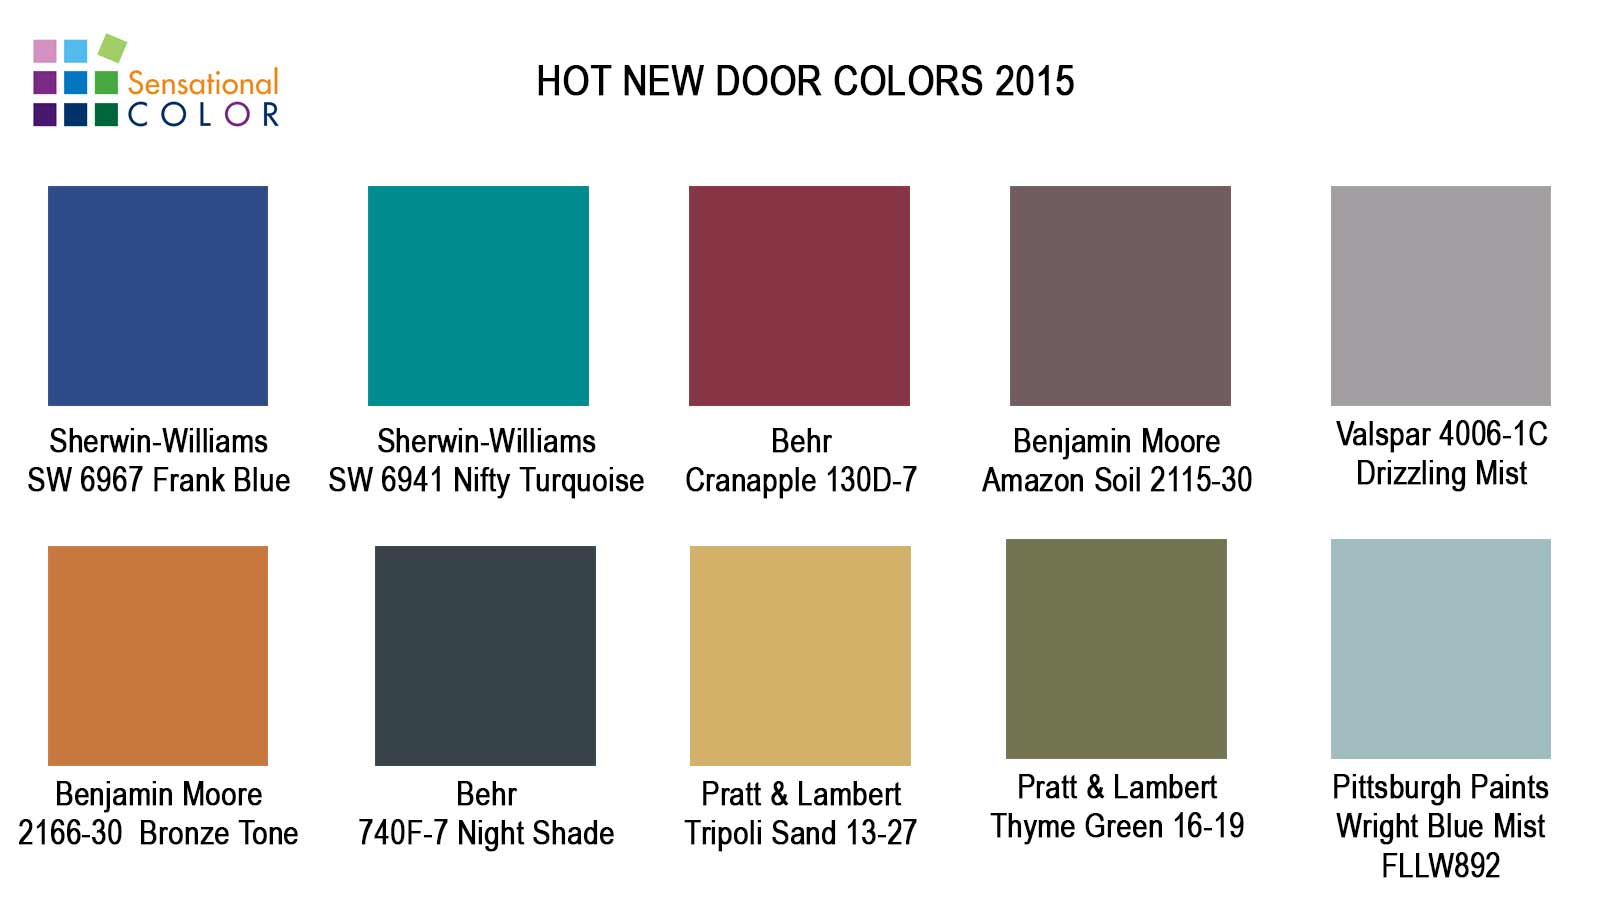 Exterior house painting colors www galleryhip com the hippest pics - New Paint Colors 2015 Color Trends Dio Home Improvements 2015 Olympic Paint